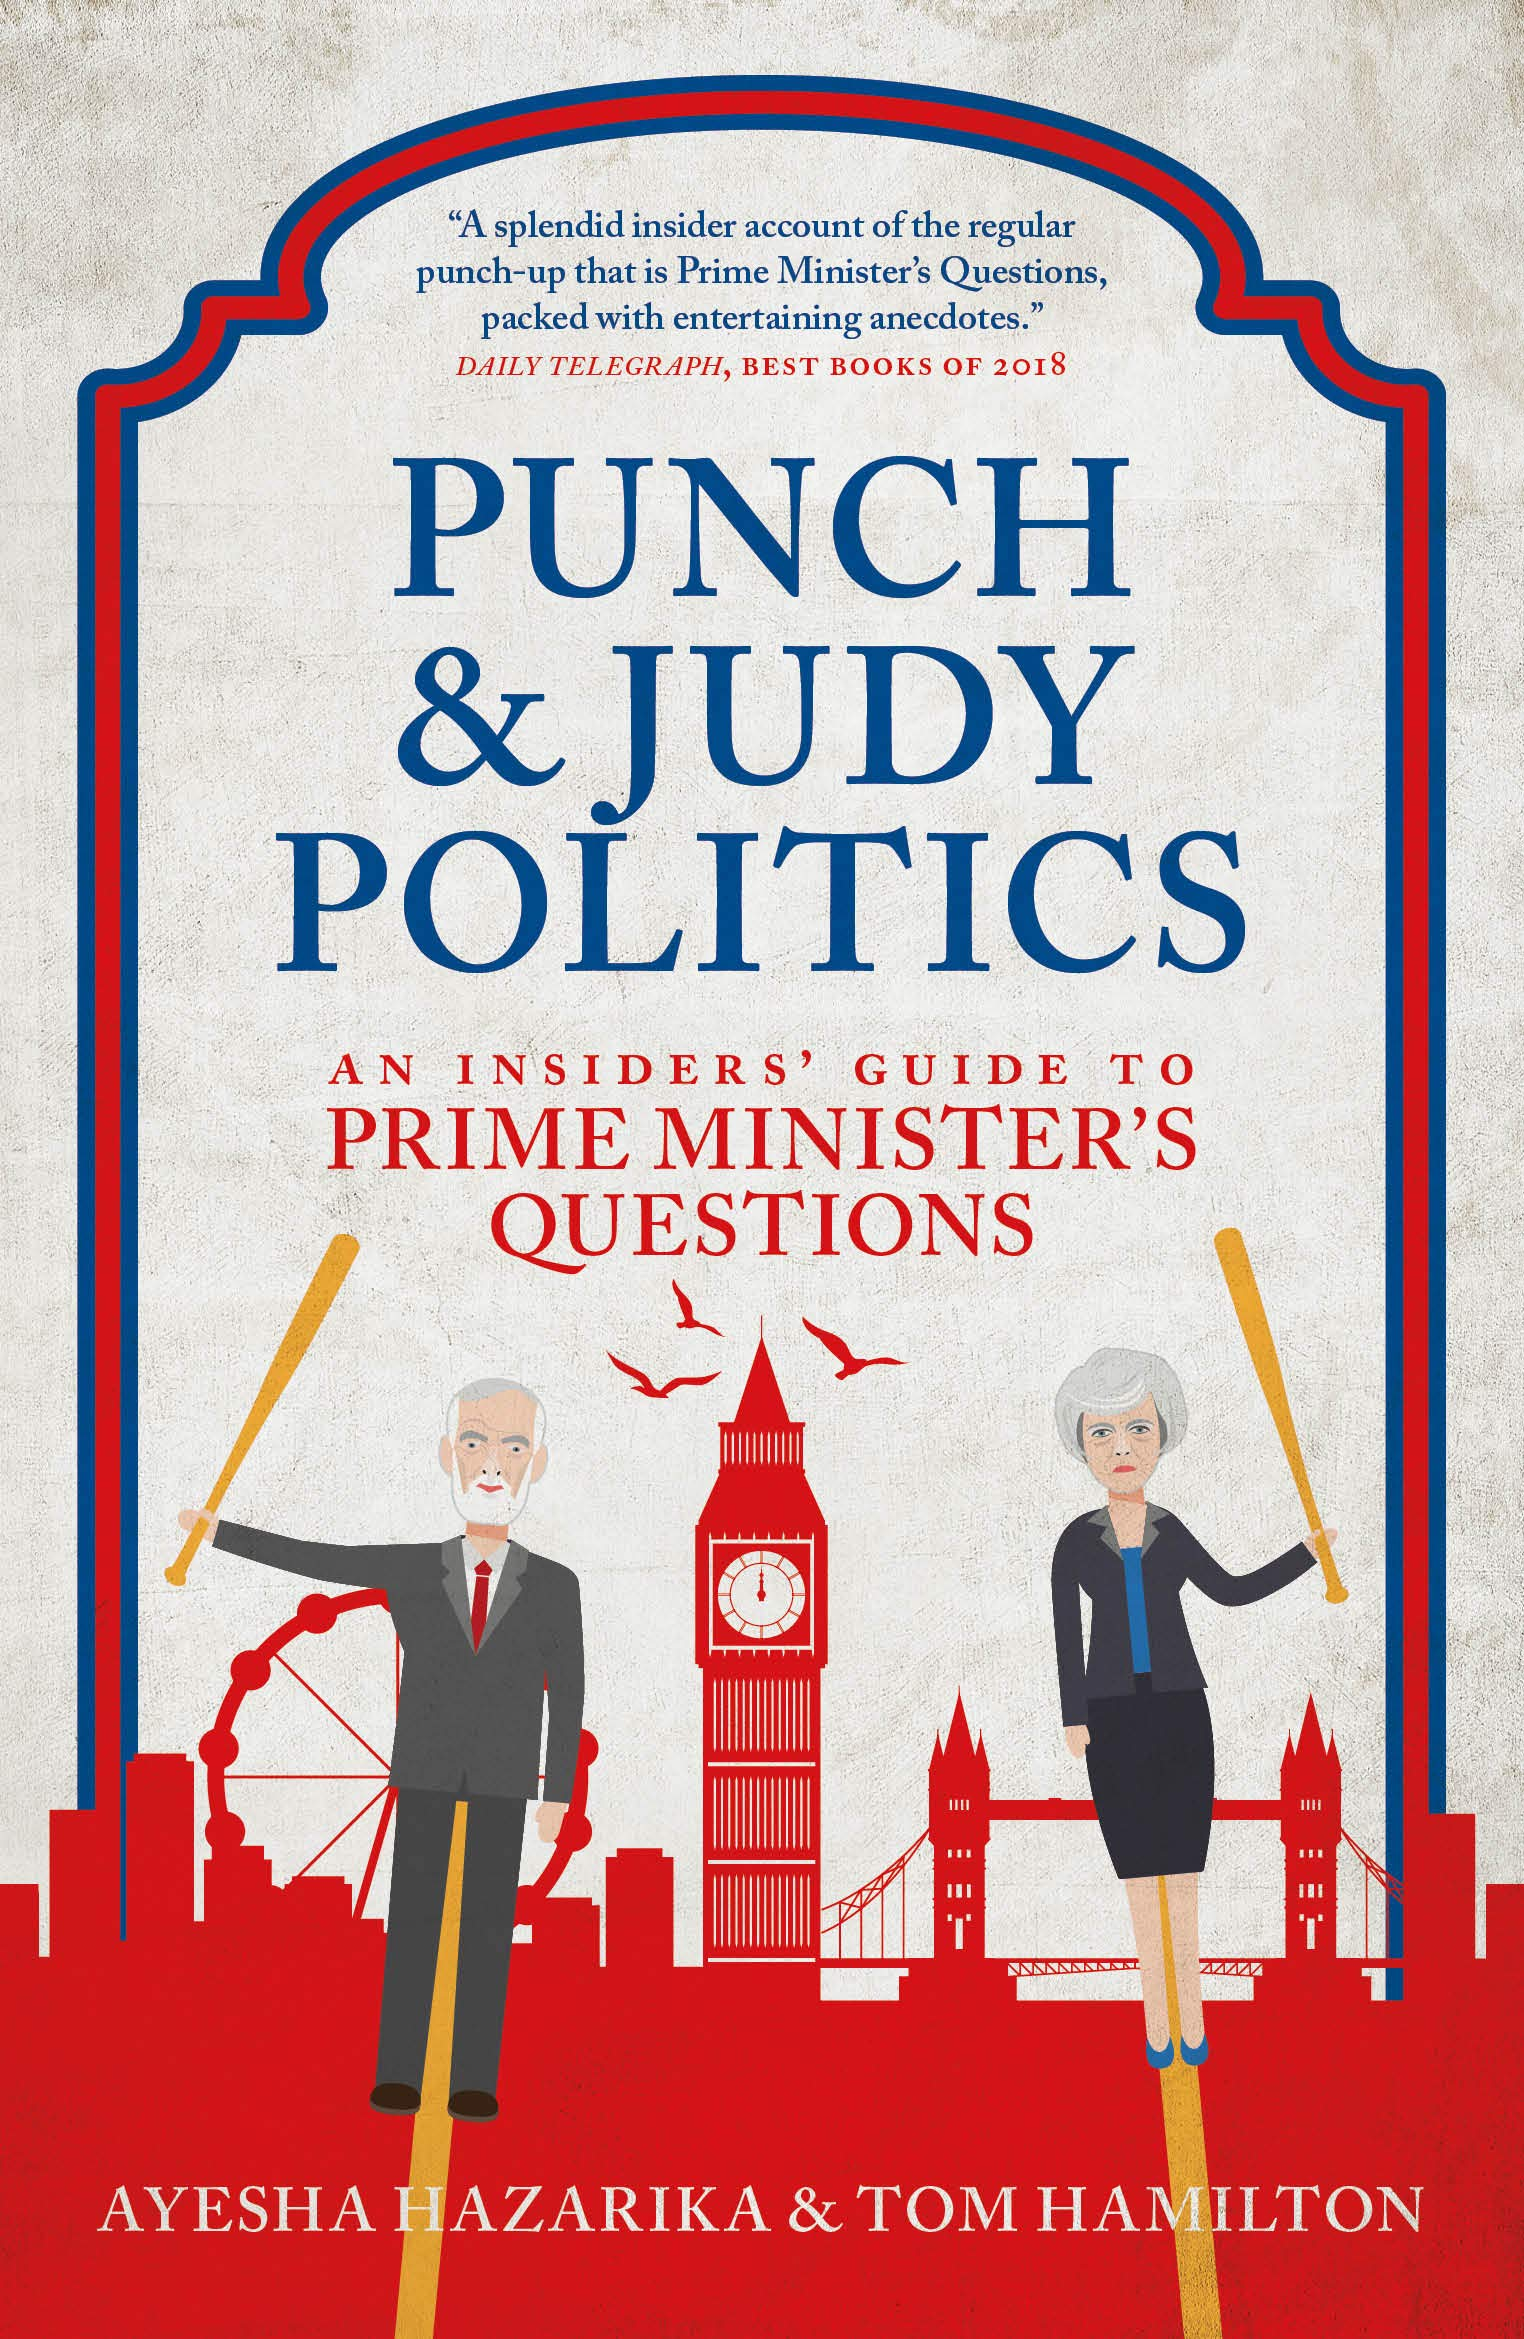 Punch and Judy Politics: An Insiders' Guide to Prime